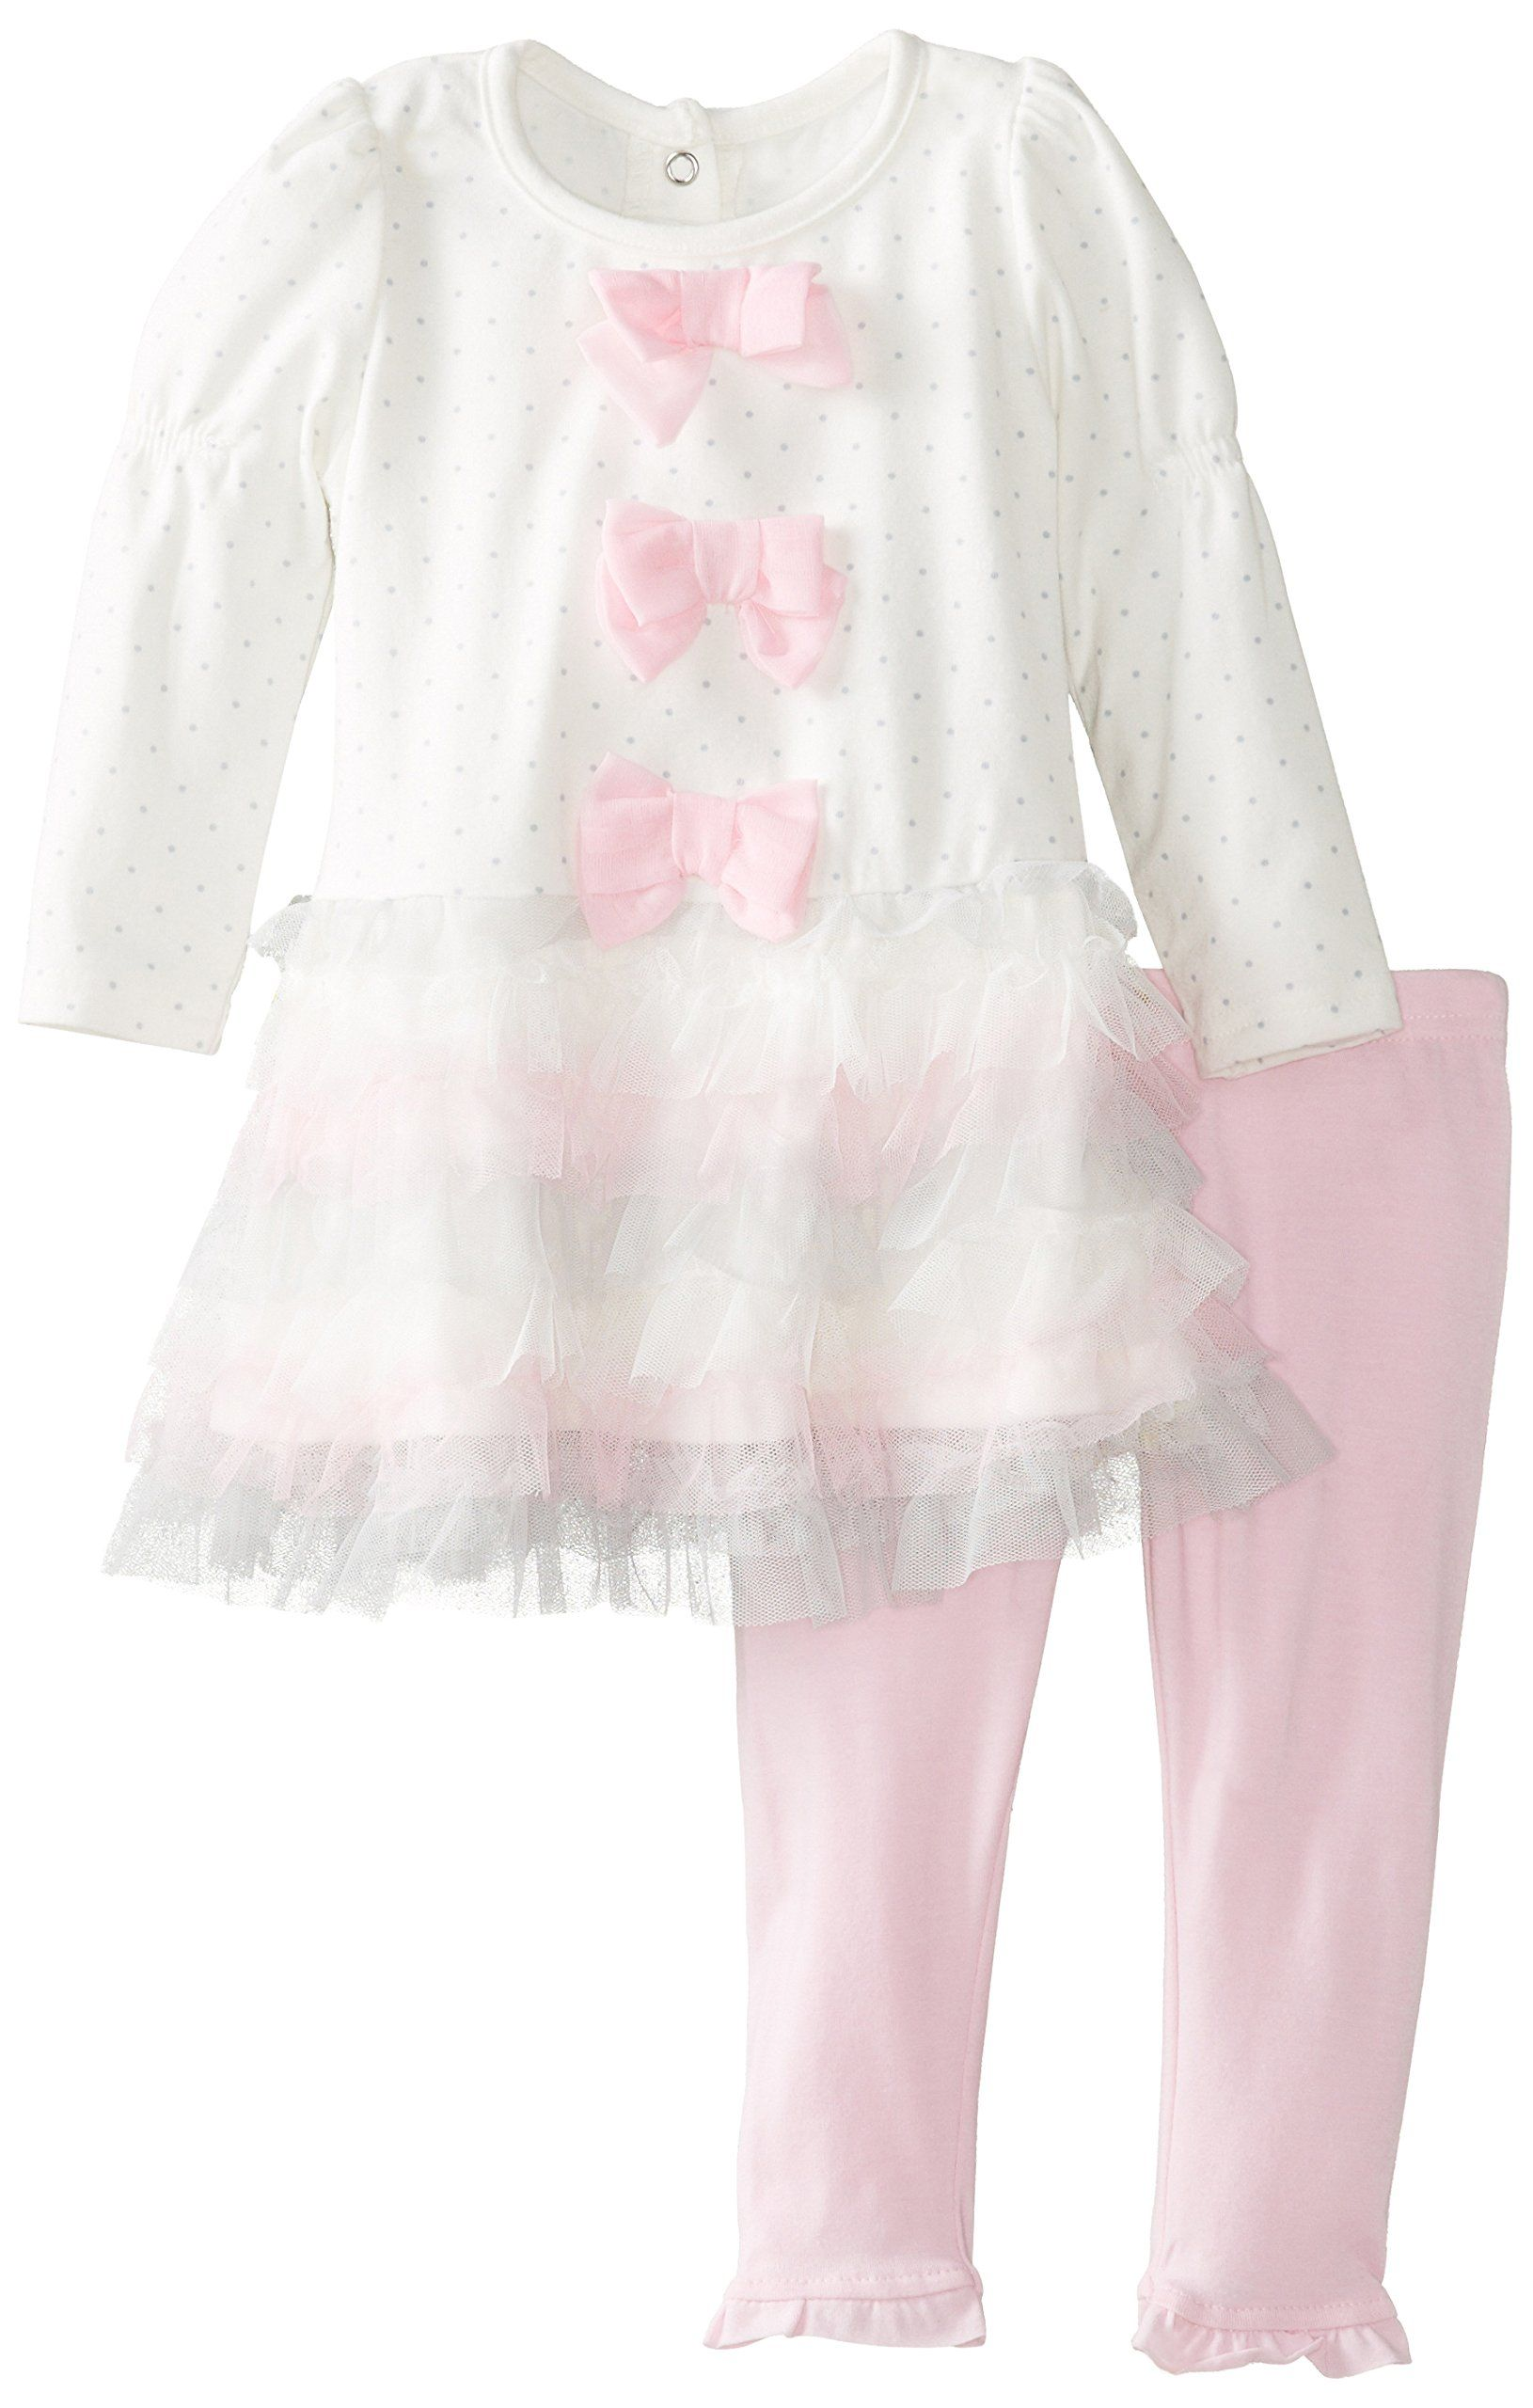 Nannette Baby Girls 2 Piece Tiered Dress Set Off White 12 Months Baby Girl Clothing Baby Girl Fashion C Cute Baby Girl Outfits Set Dress Baby Girl Clothes [ 2560 x 1630 Pixel ]